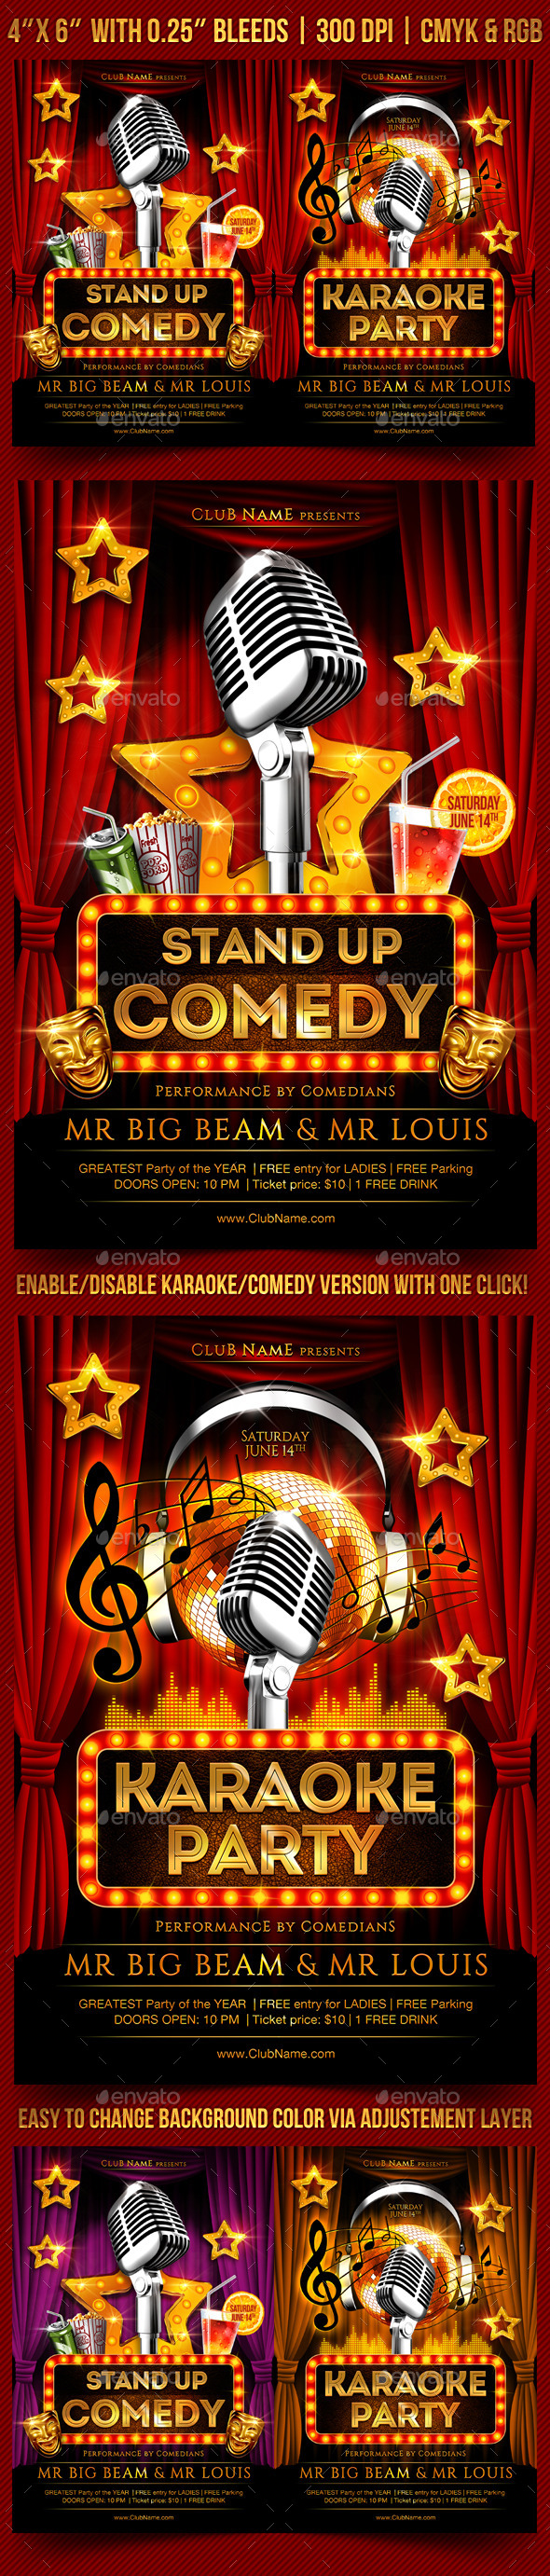 Comedy and Karaoke Flyer Template - Clubs & Parties Events